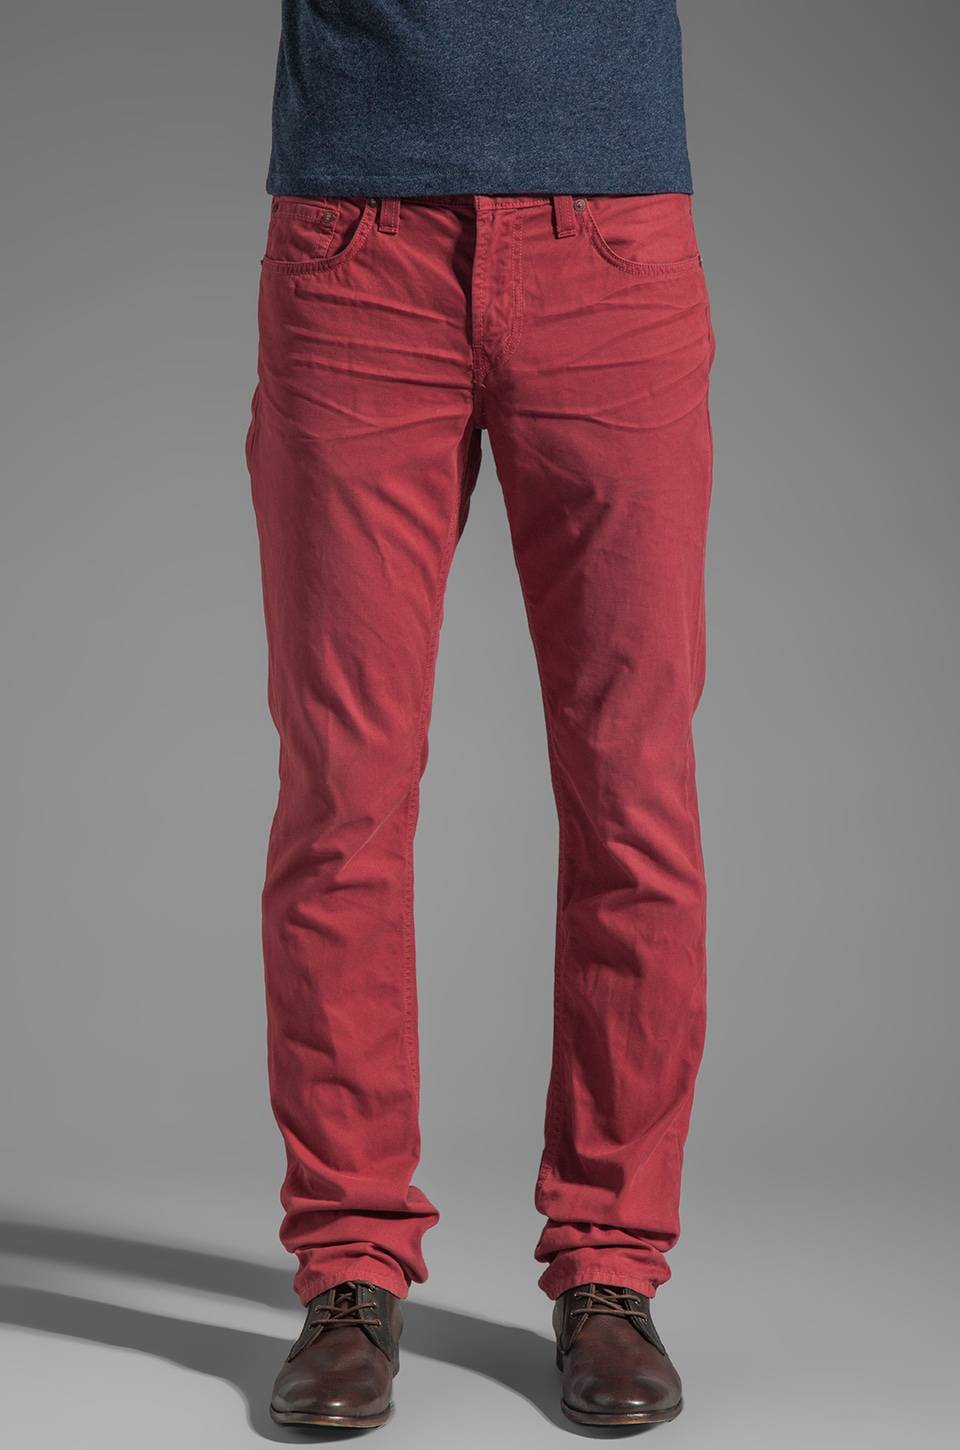 J Brand Kane in Artisan Frenzy Red